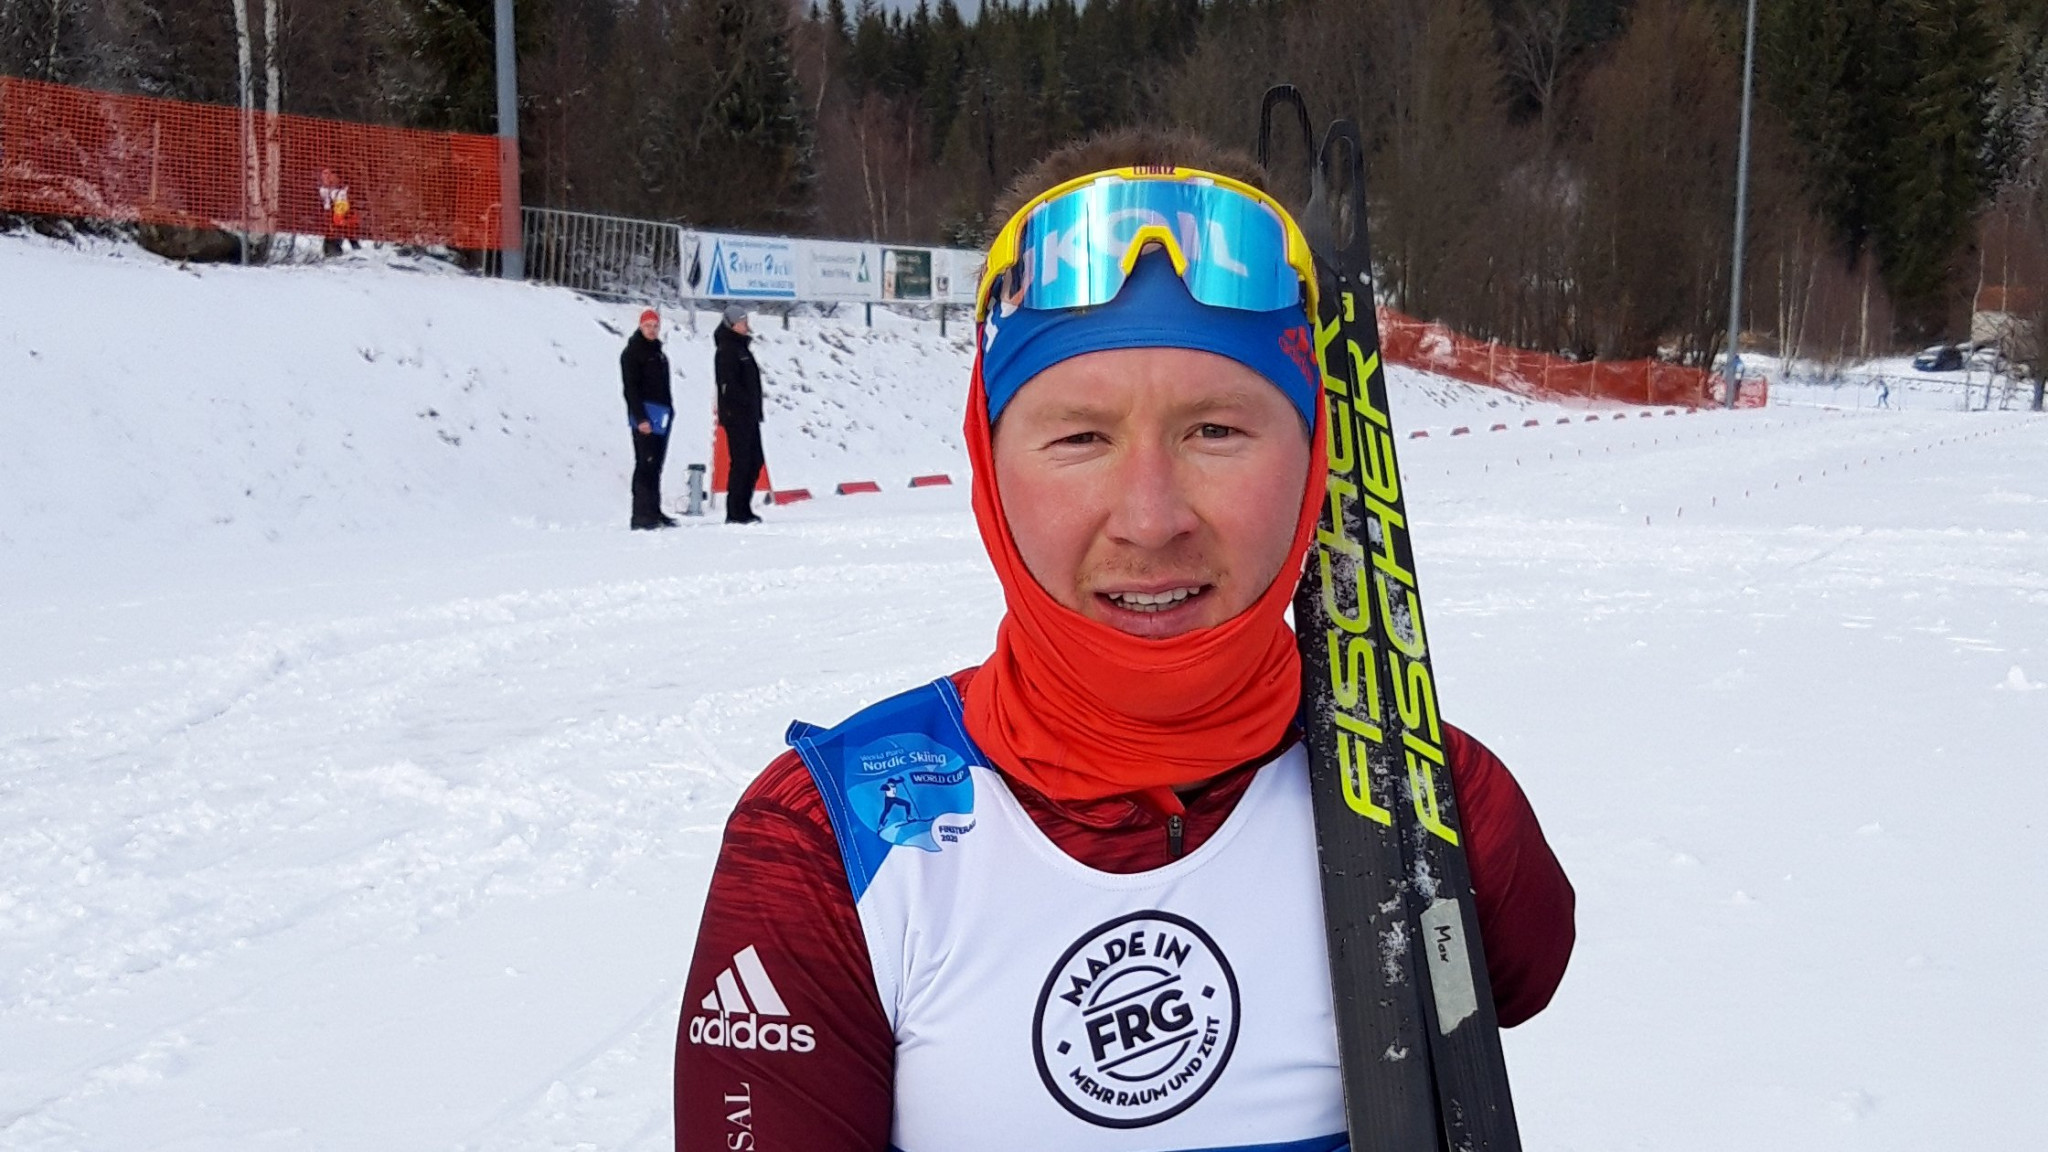 Russia earned four gold medals on the third day of the World Para Nordic Skiing World Cup in Finsterau ©Twitter